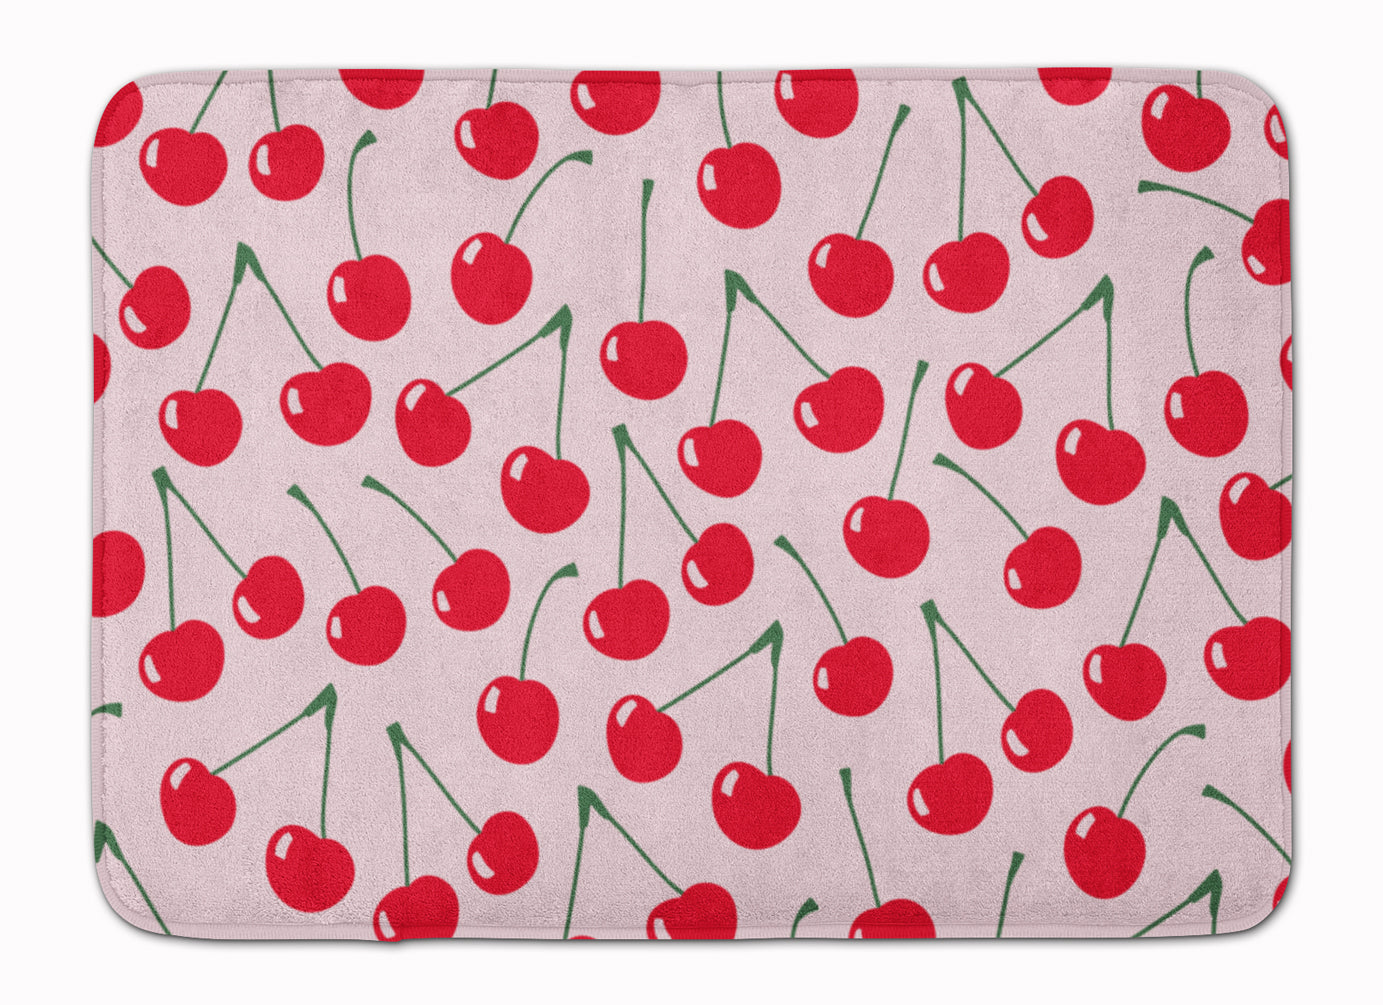 Cherries on Pink Machine Washable Memory Foam Mat BB5139RUG by Caroline's Treasures